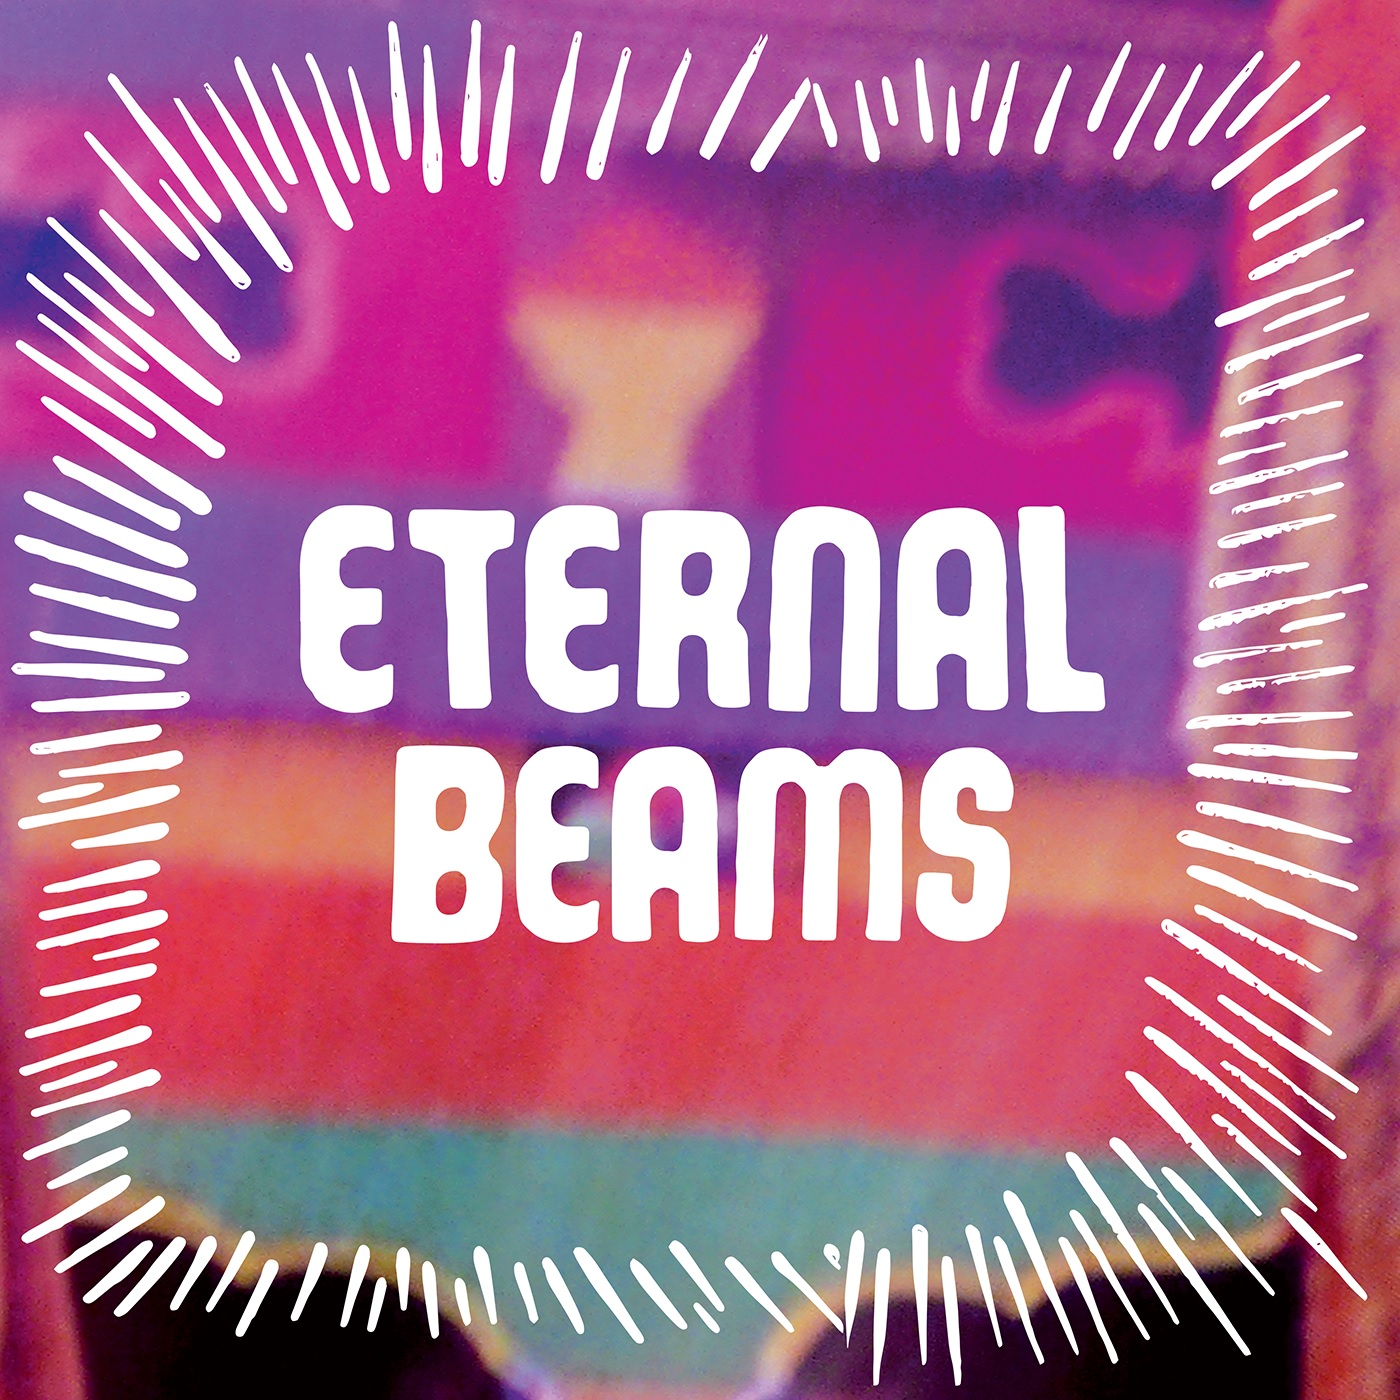 Seahawks/ETERNAL BEAMS LP